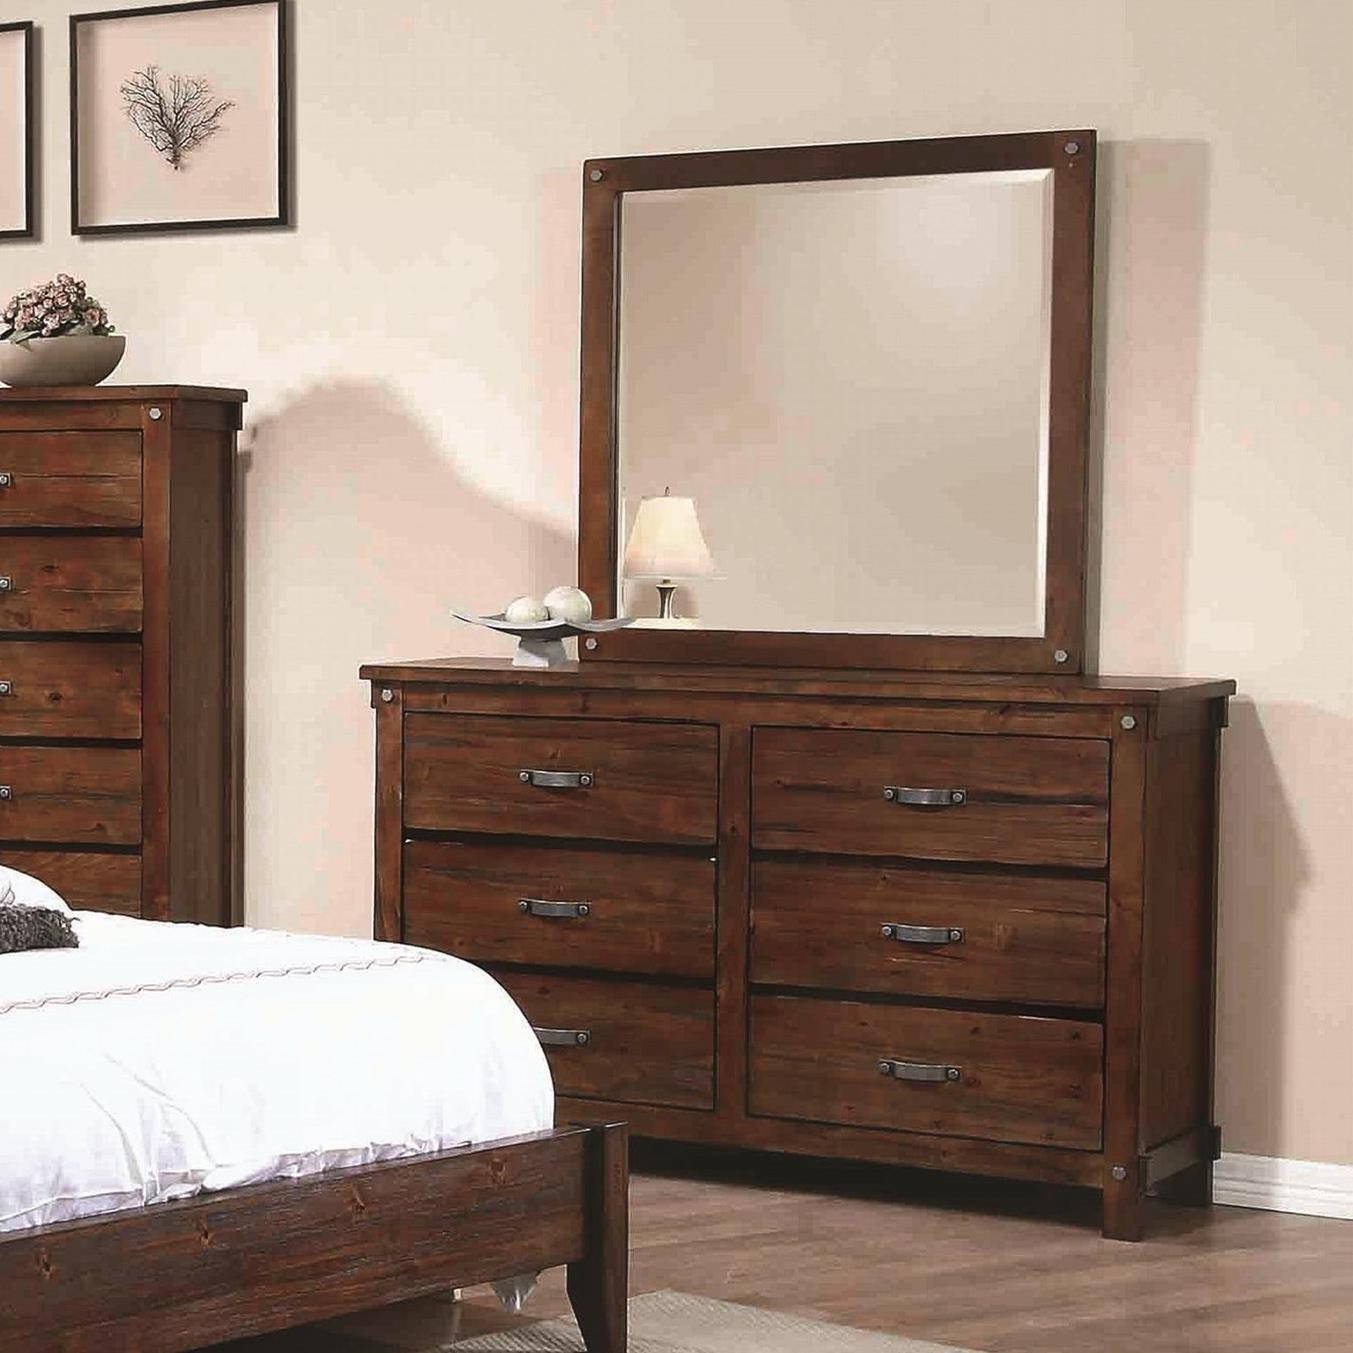 Coaster Noble 6 Drawer Dresser and Mirror - Item Number: B219-03+04